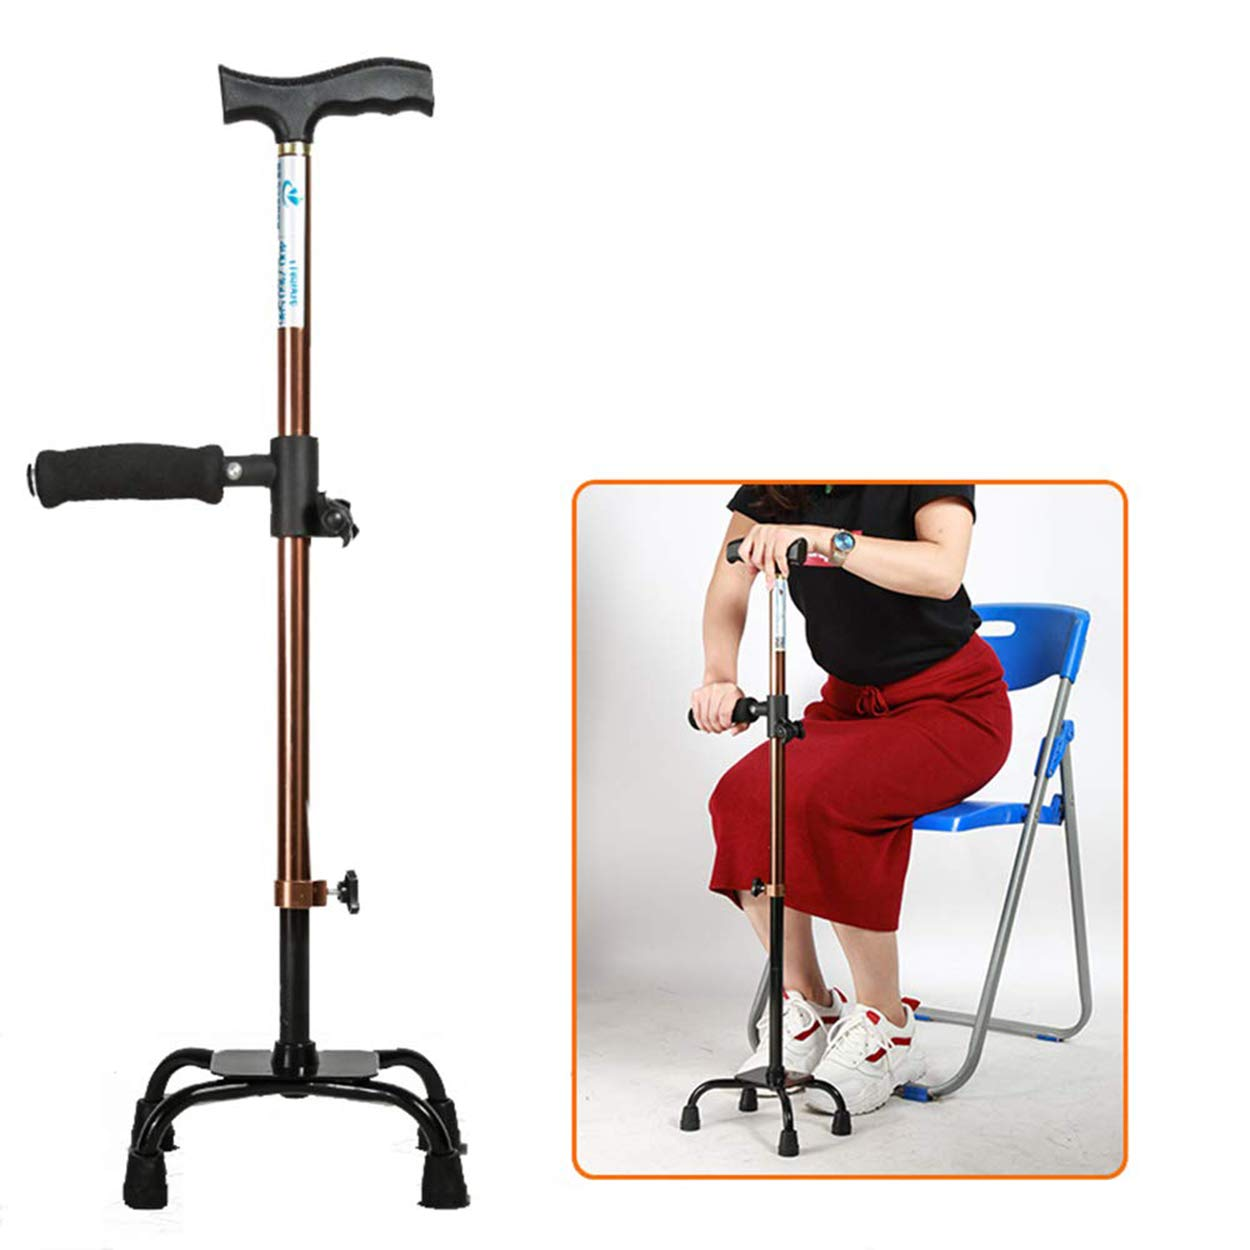 Four Legged Adjustable Lightweight Sit Stand Stability